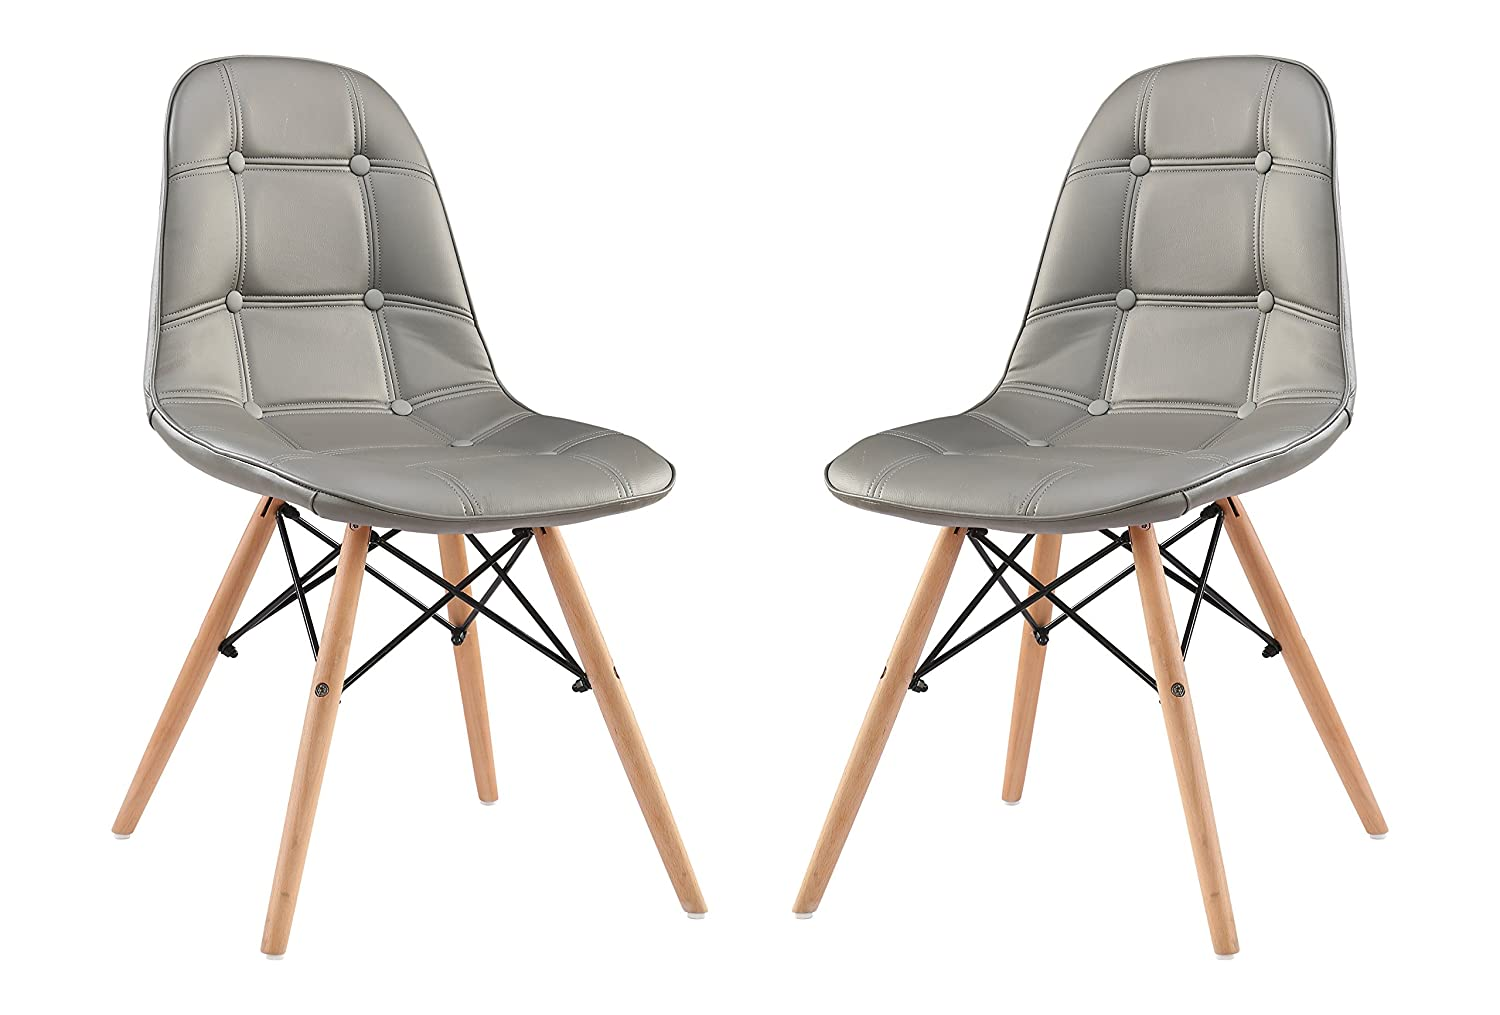 Classico Replica Eames Style Dining Chair - Gray (Pack of 2)